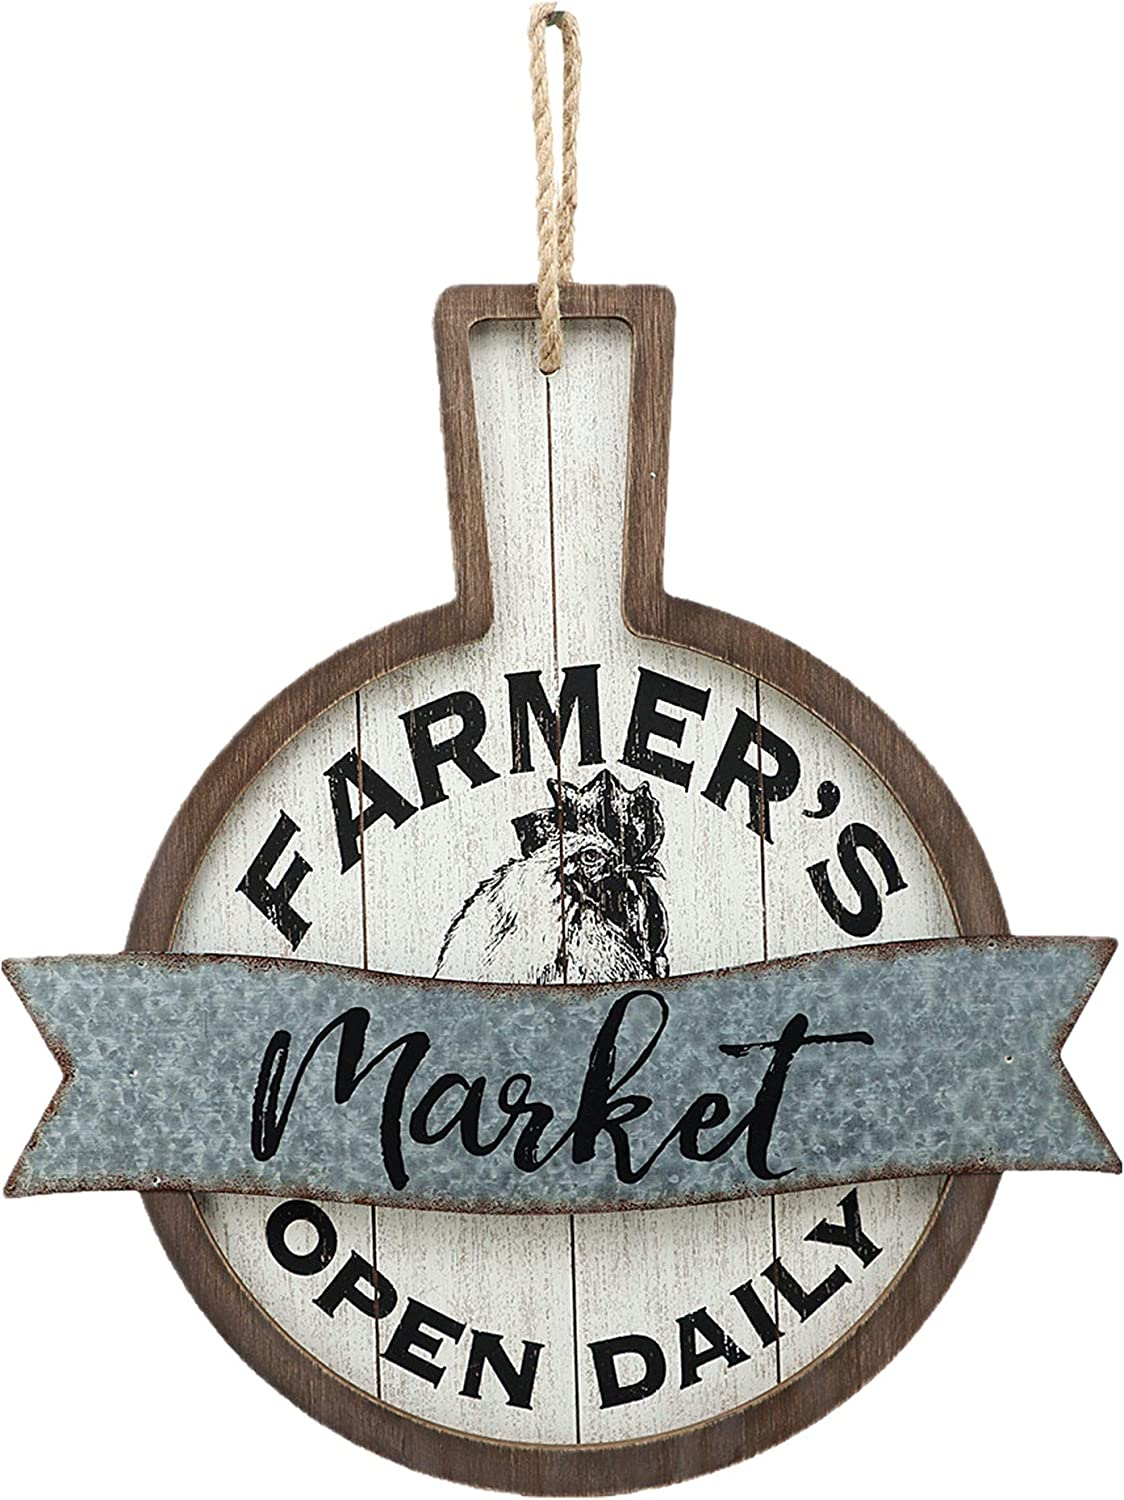 Parisloft Farmer's Market Open Daily Wood and Metal Circular Signs|Rustic Farmhouse Kitchen Wood Sign Plaque Wall Hanging Decor 17.75x0.5x19''